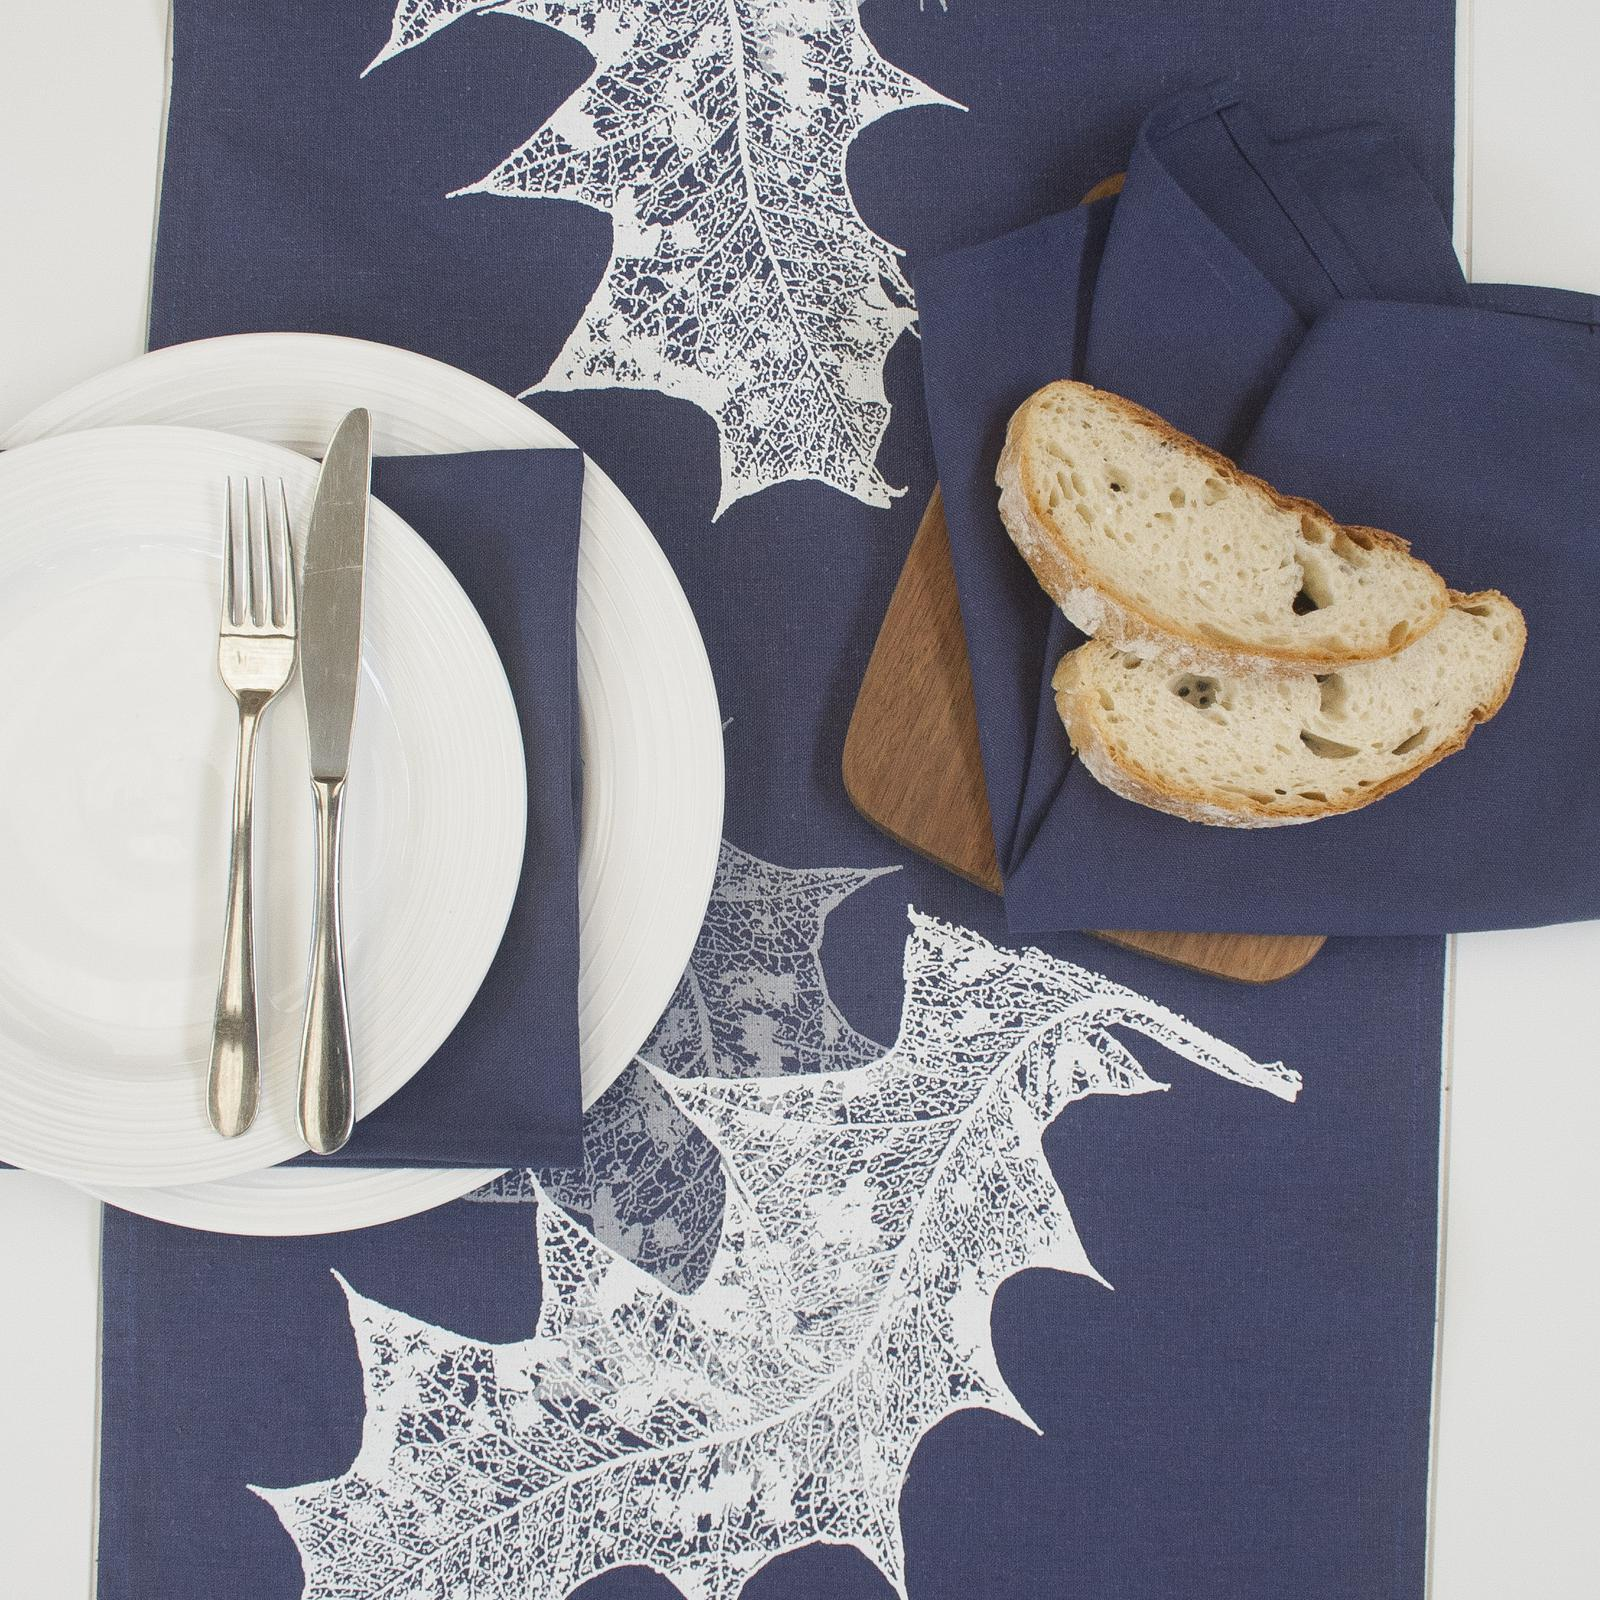 Grevillea Leaf Indigo- Napkins & Table Runner